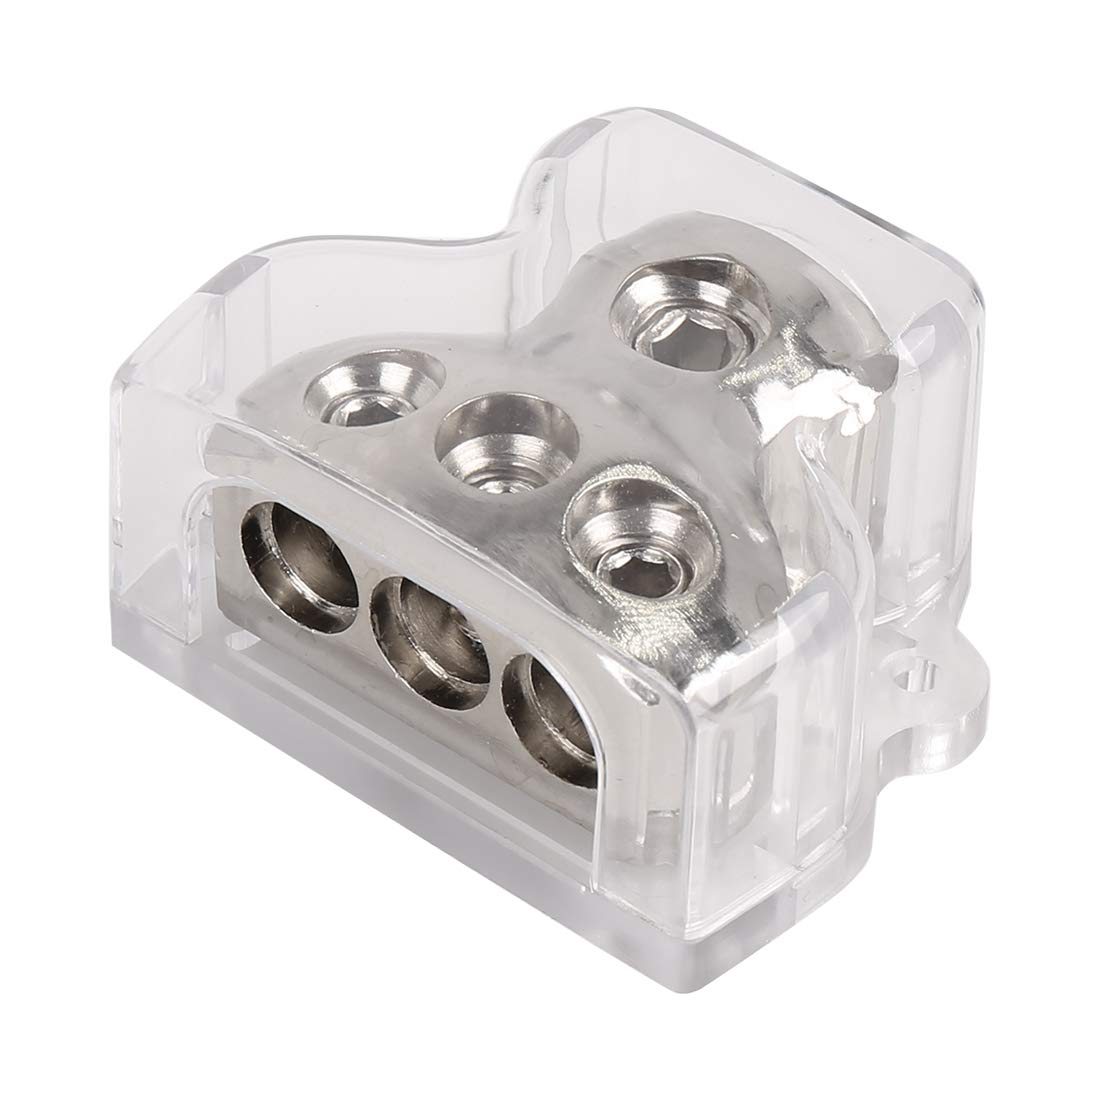 X AUTOHAUX 1 in 3 Out Car Audio Cable Splitter Block Ground Distribution Connector Box Holder